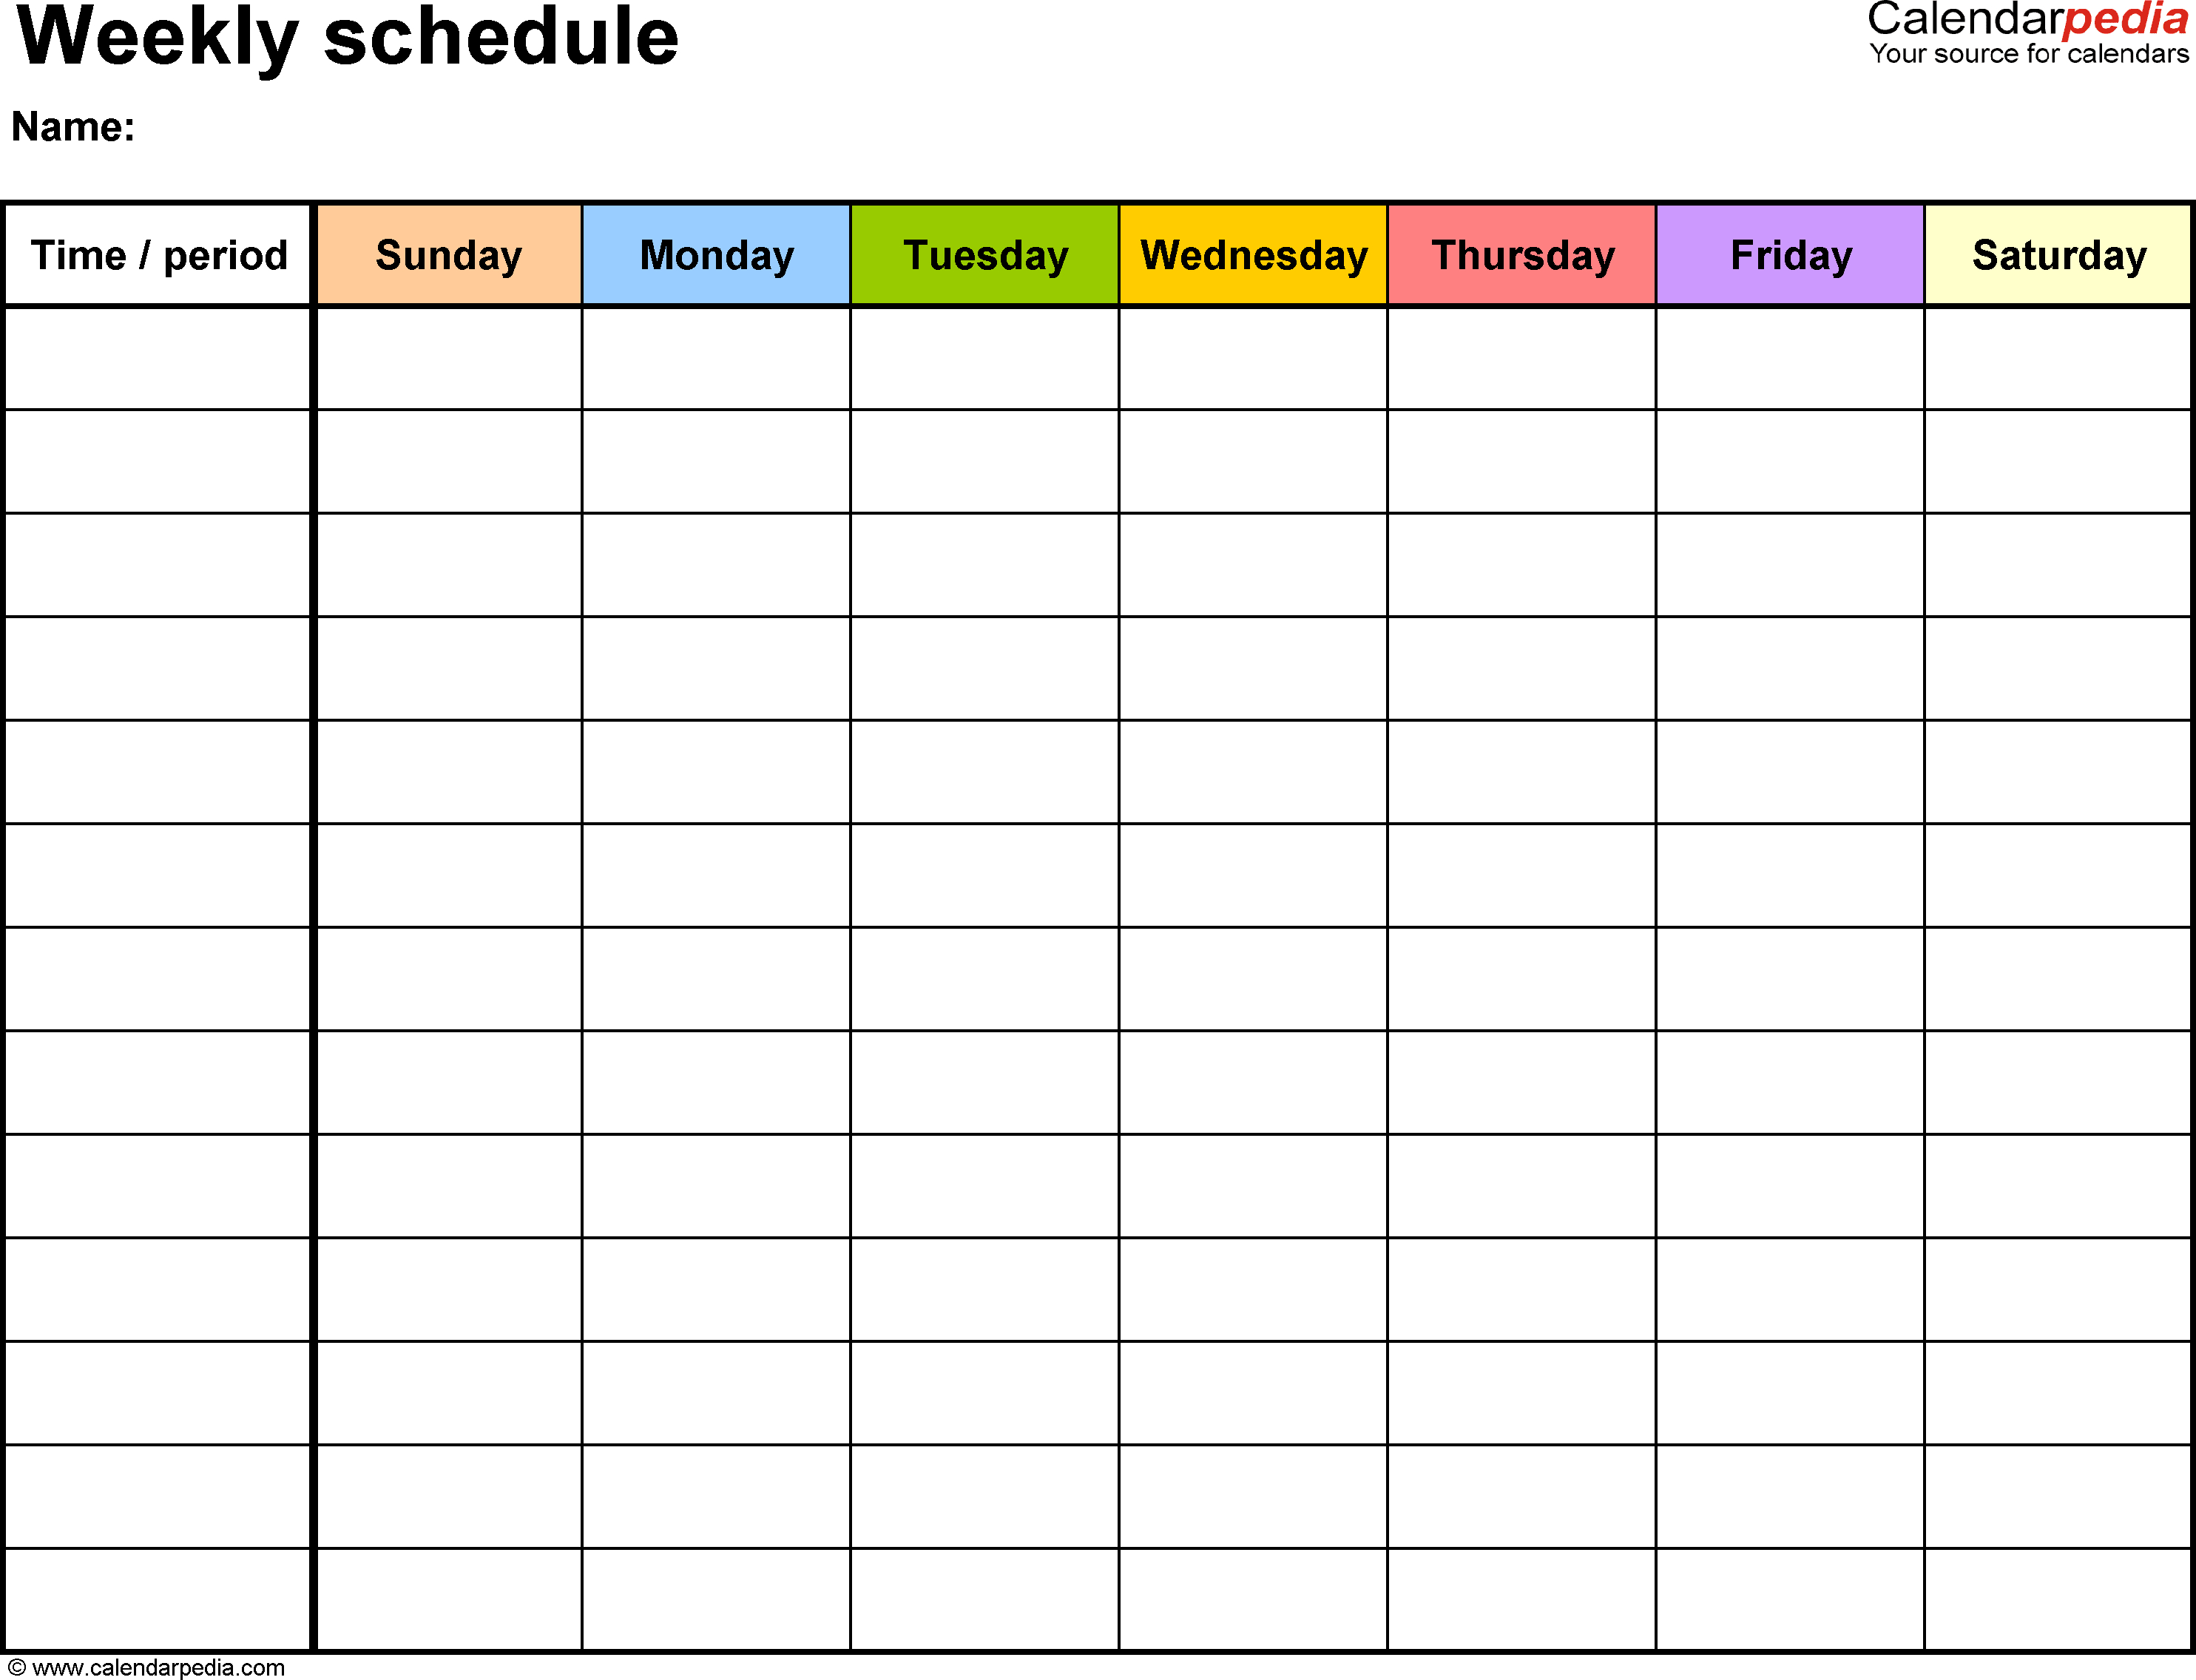 Free Weekly Schedule Templates For Word - 18 Templates inside Monday Through Friday Blank Schedule Print Out